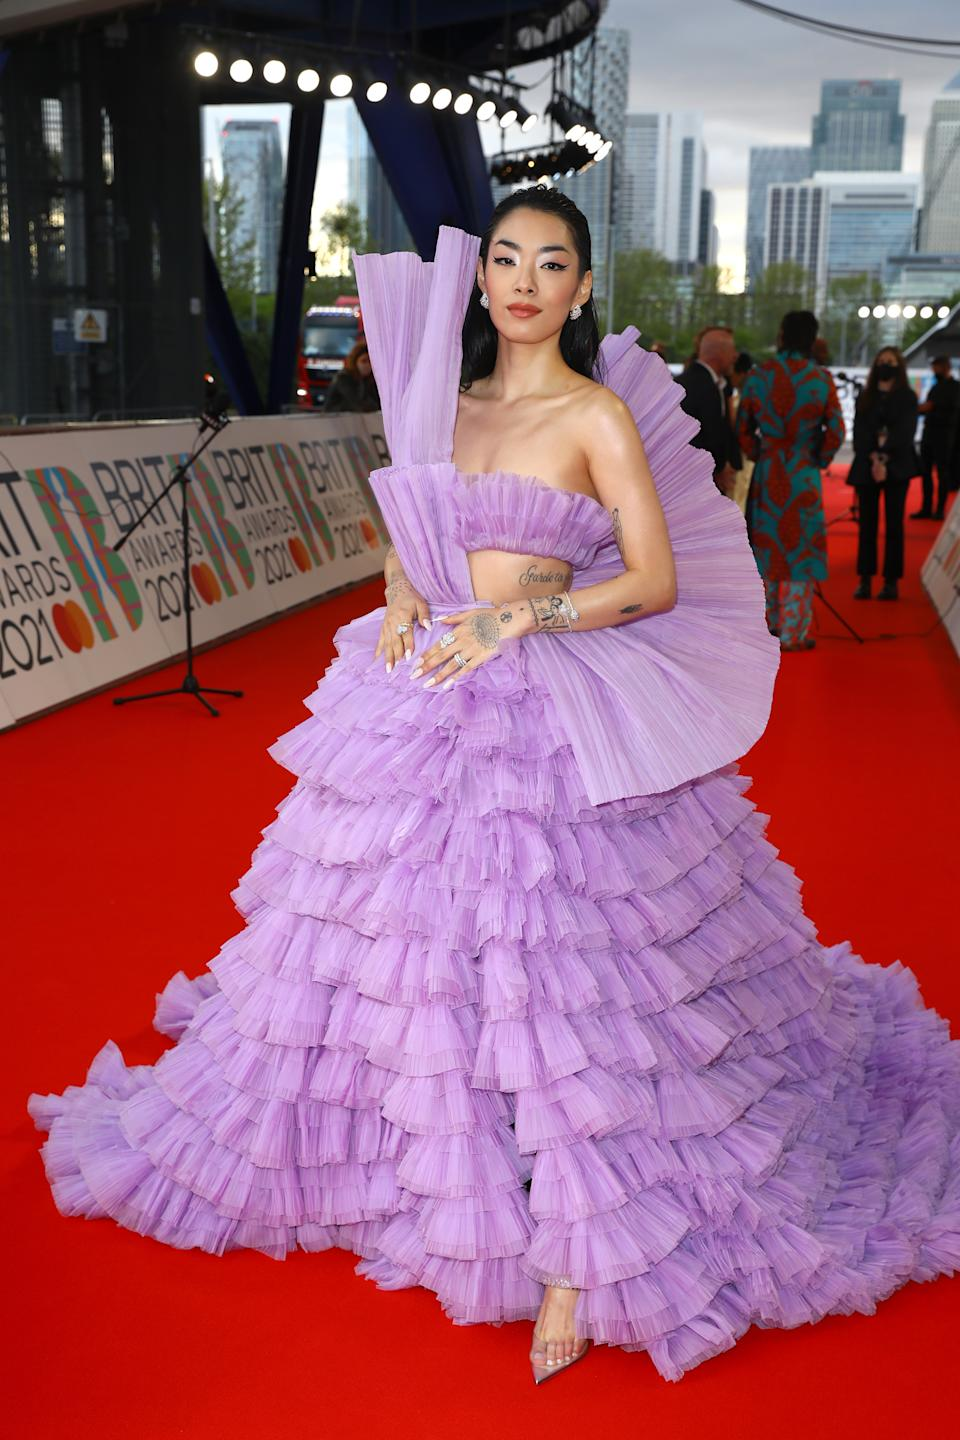 Rina Sawayama arrives at The BRIT Awards 2021 at The O2 Arena on May 11, 2021 in London, England. (Photo by JMEnternational/JMEnternational for BRIT Awards/Getty Images)